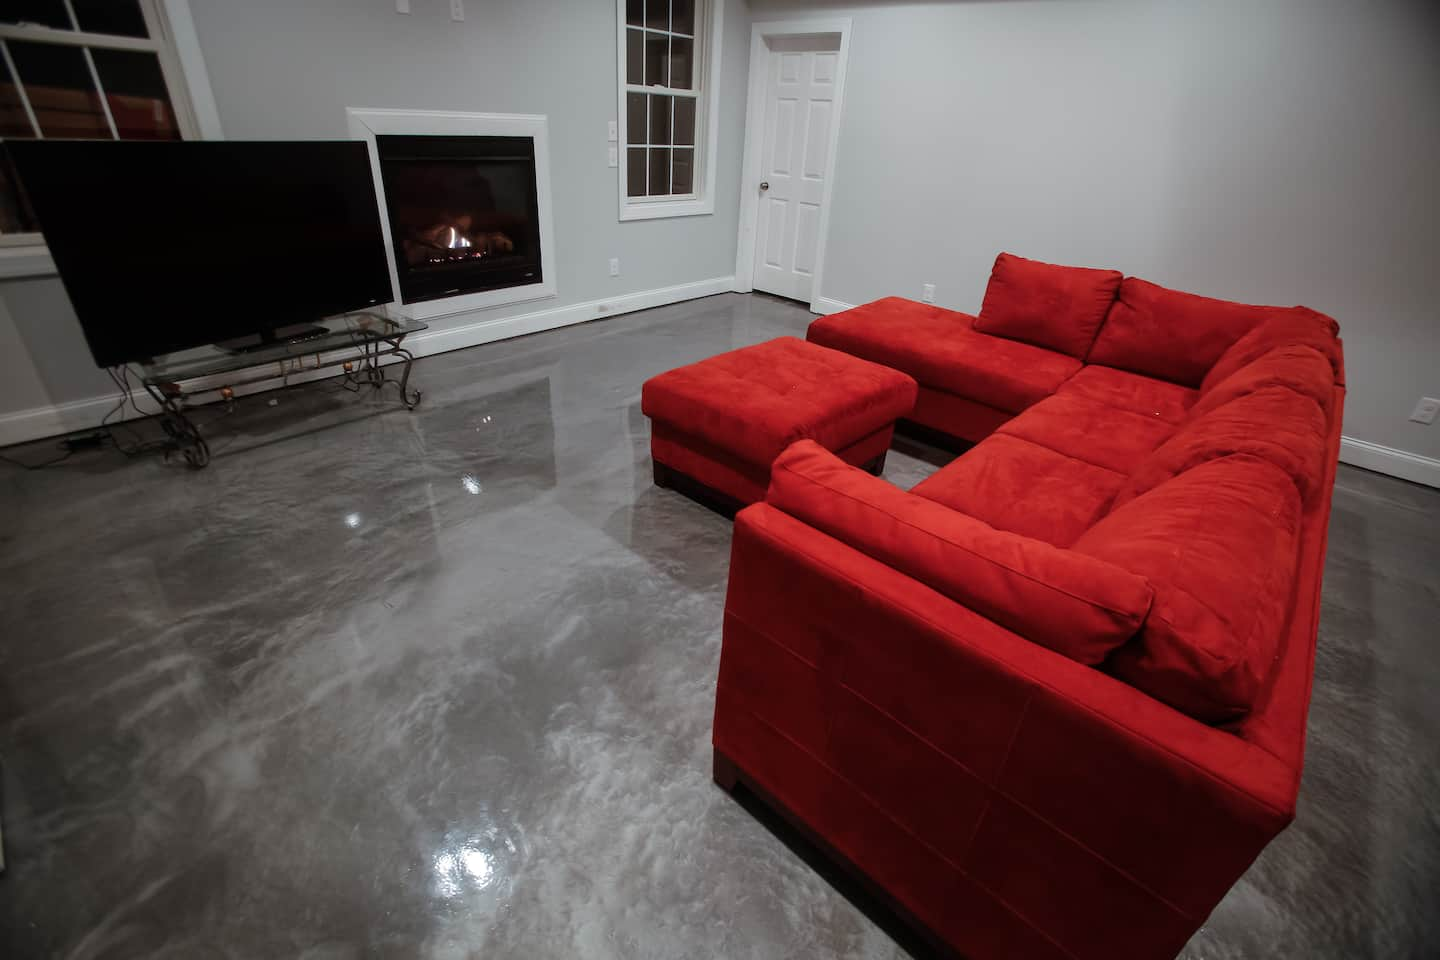 12 tips for maintaining epoxy flooring | angie's list